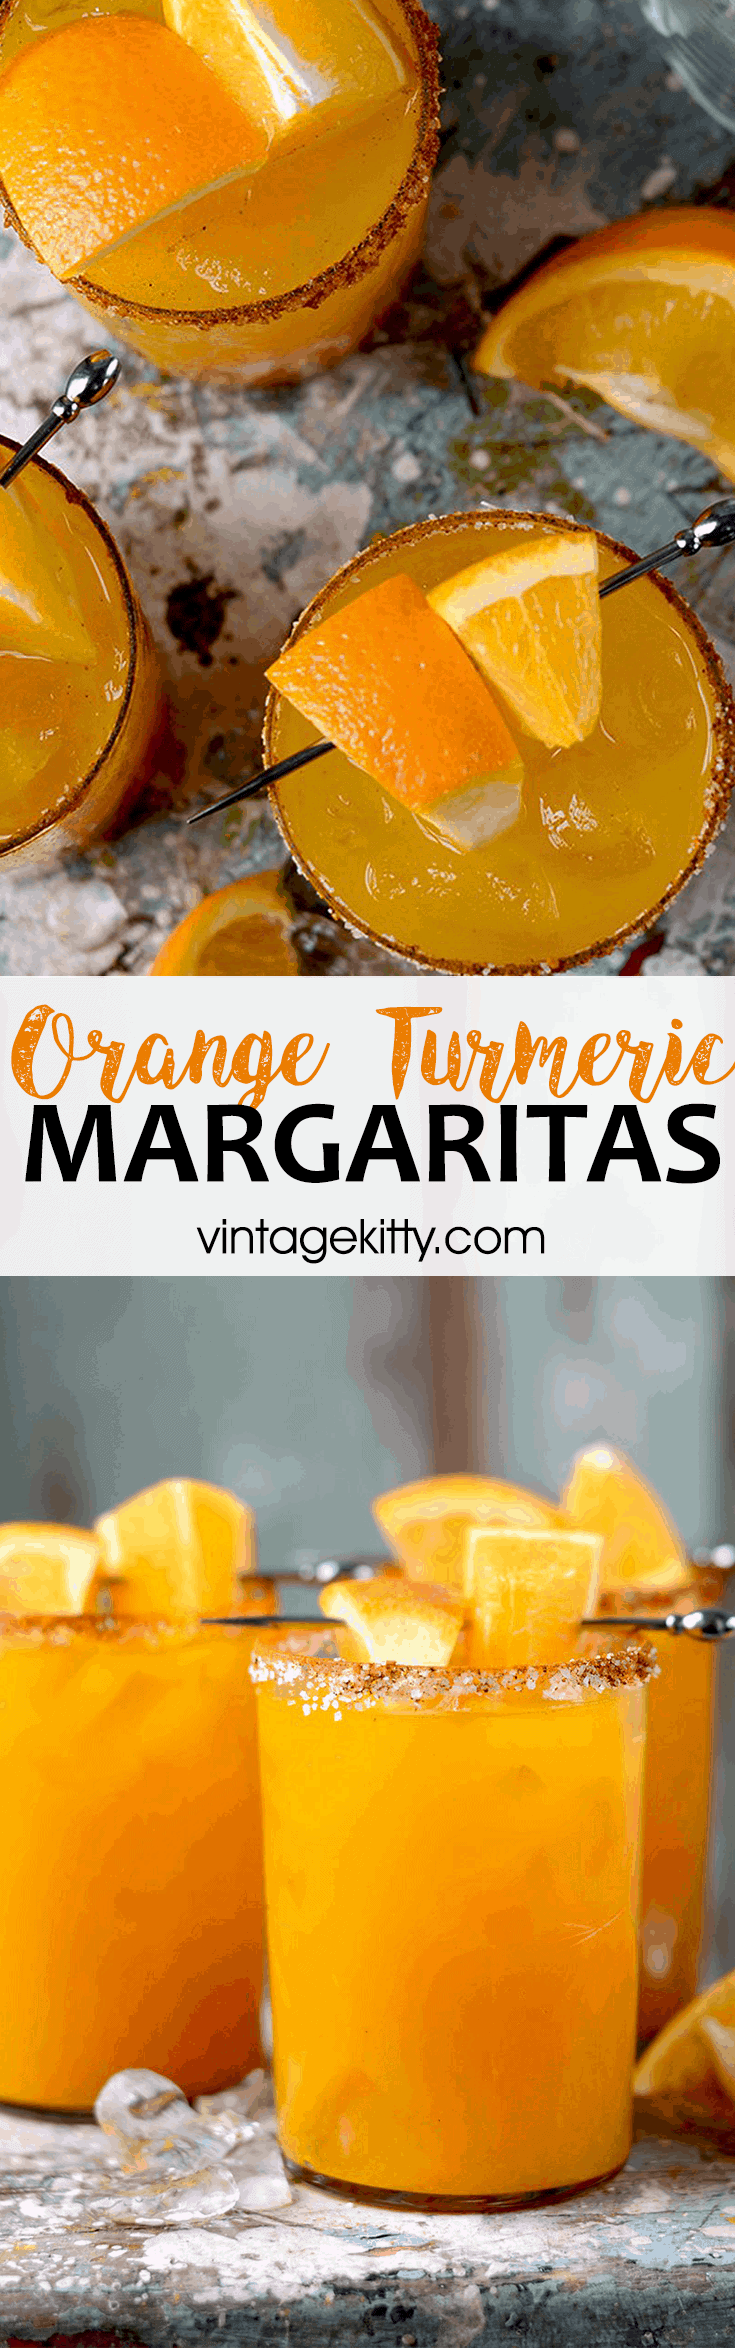 Orange Turmeric Margaritas are a sweet and smoky take on the classic cocktail. Homemade simple syrup. fresh juice and a salty, spiced rim make these drinks extra special but are still easy to make. #turmeric #margaritas #craftcocktails